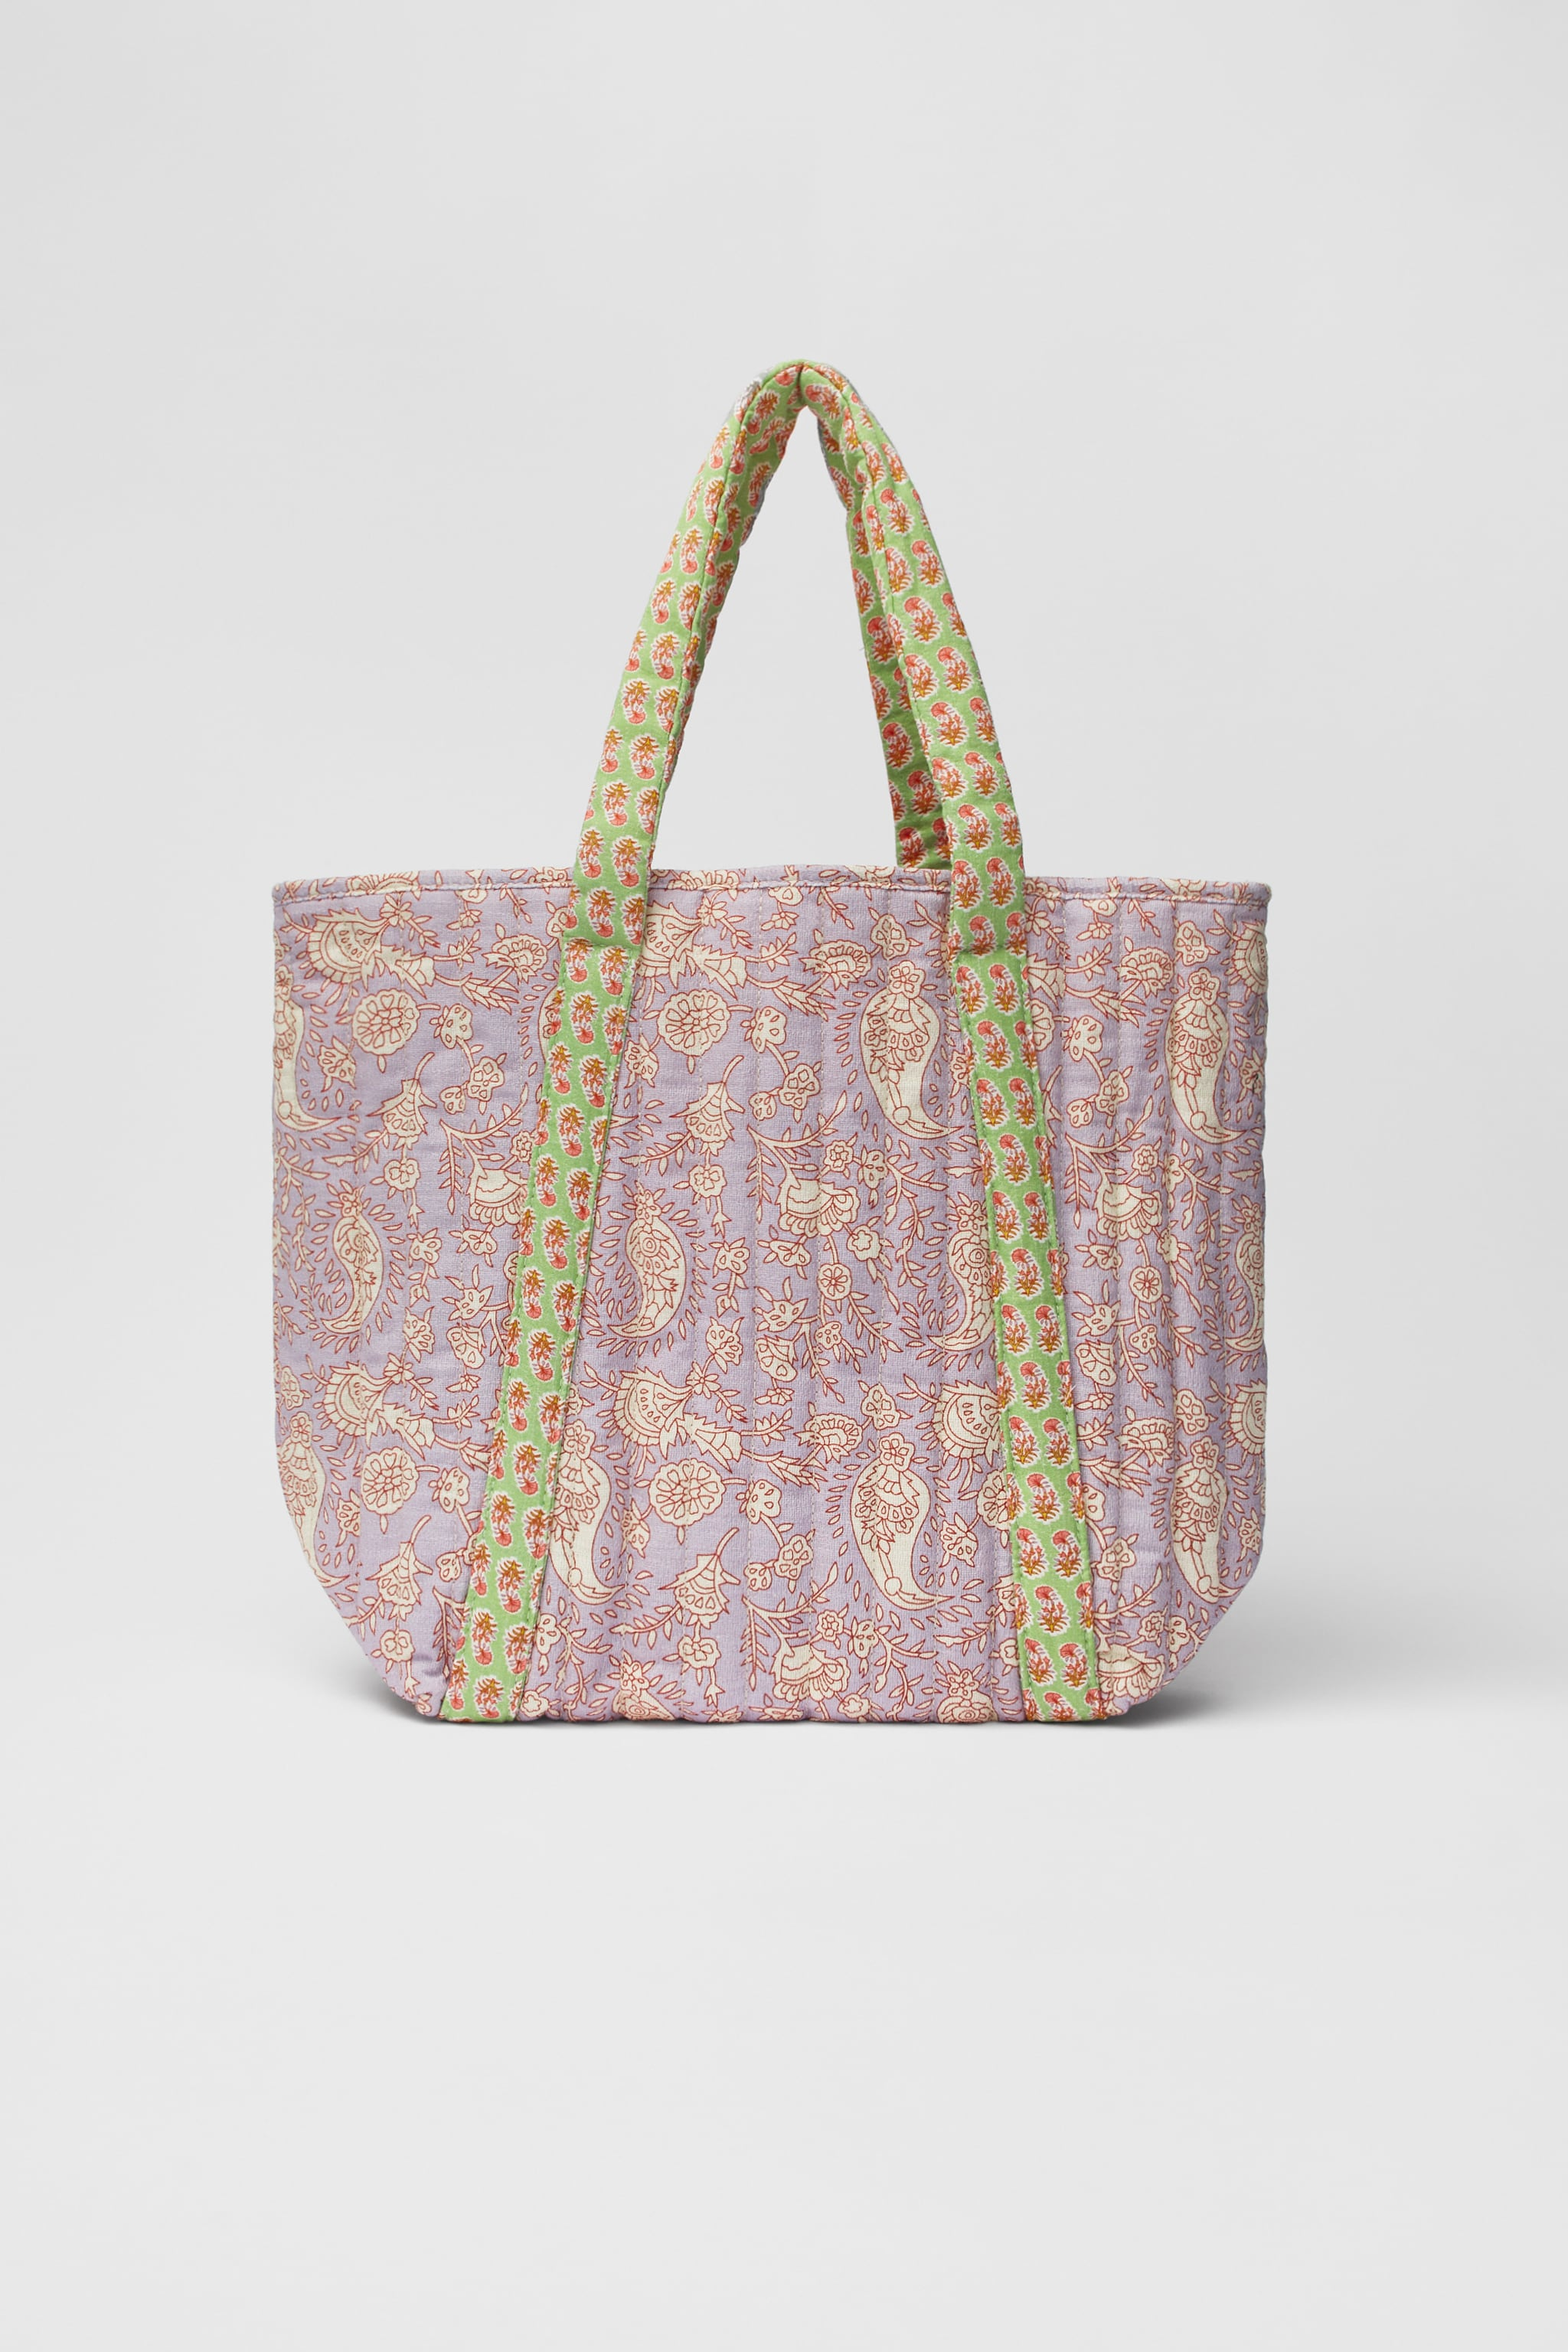 Zara QUILTED PATCHWORK TOTE